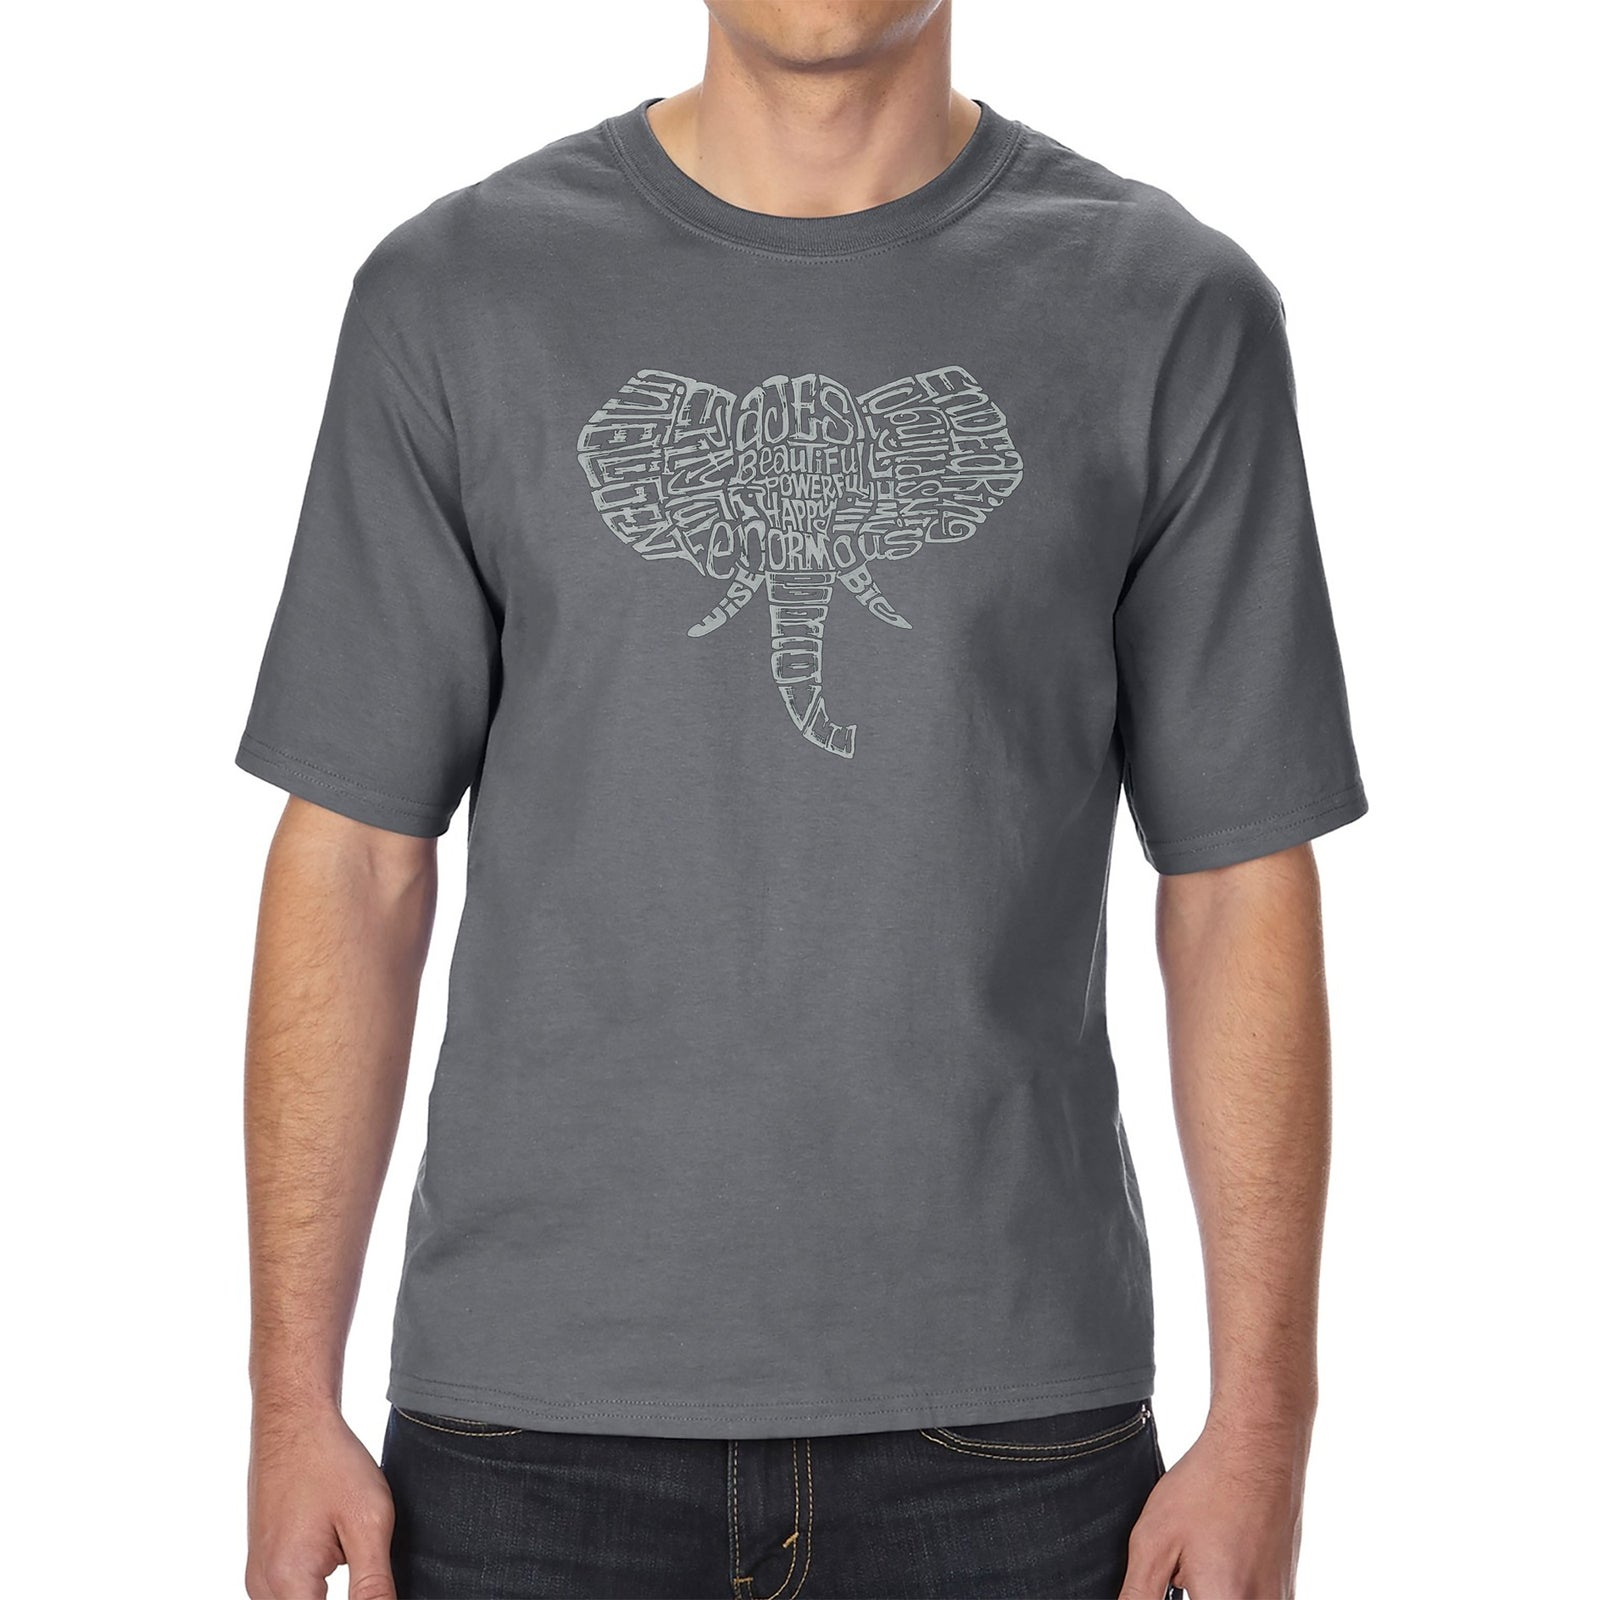 Men's Tall and Long Word Art T-shirt - Tusks